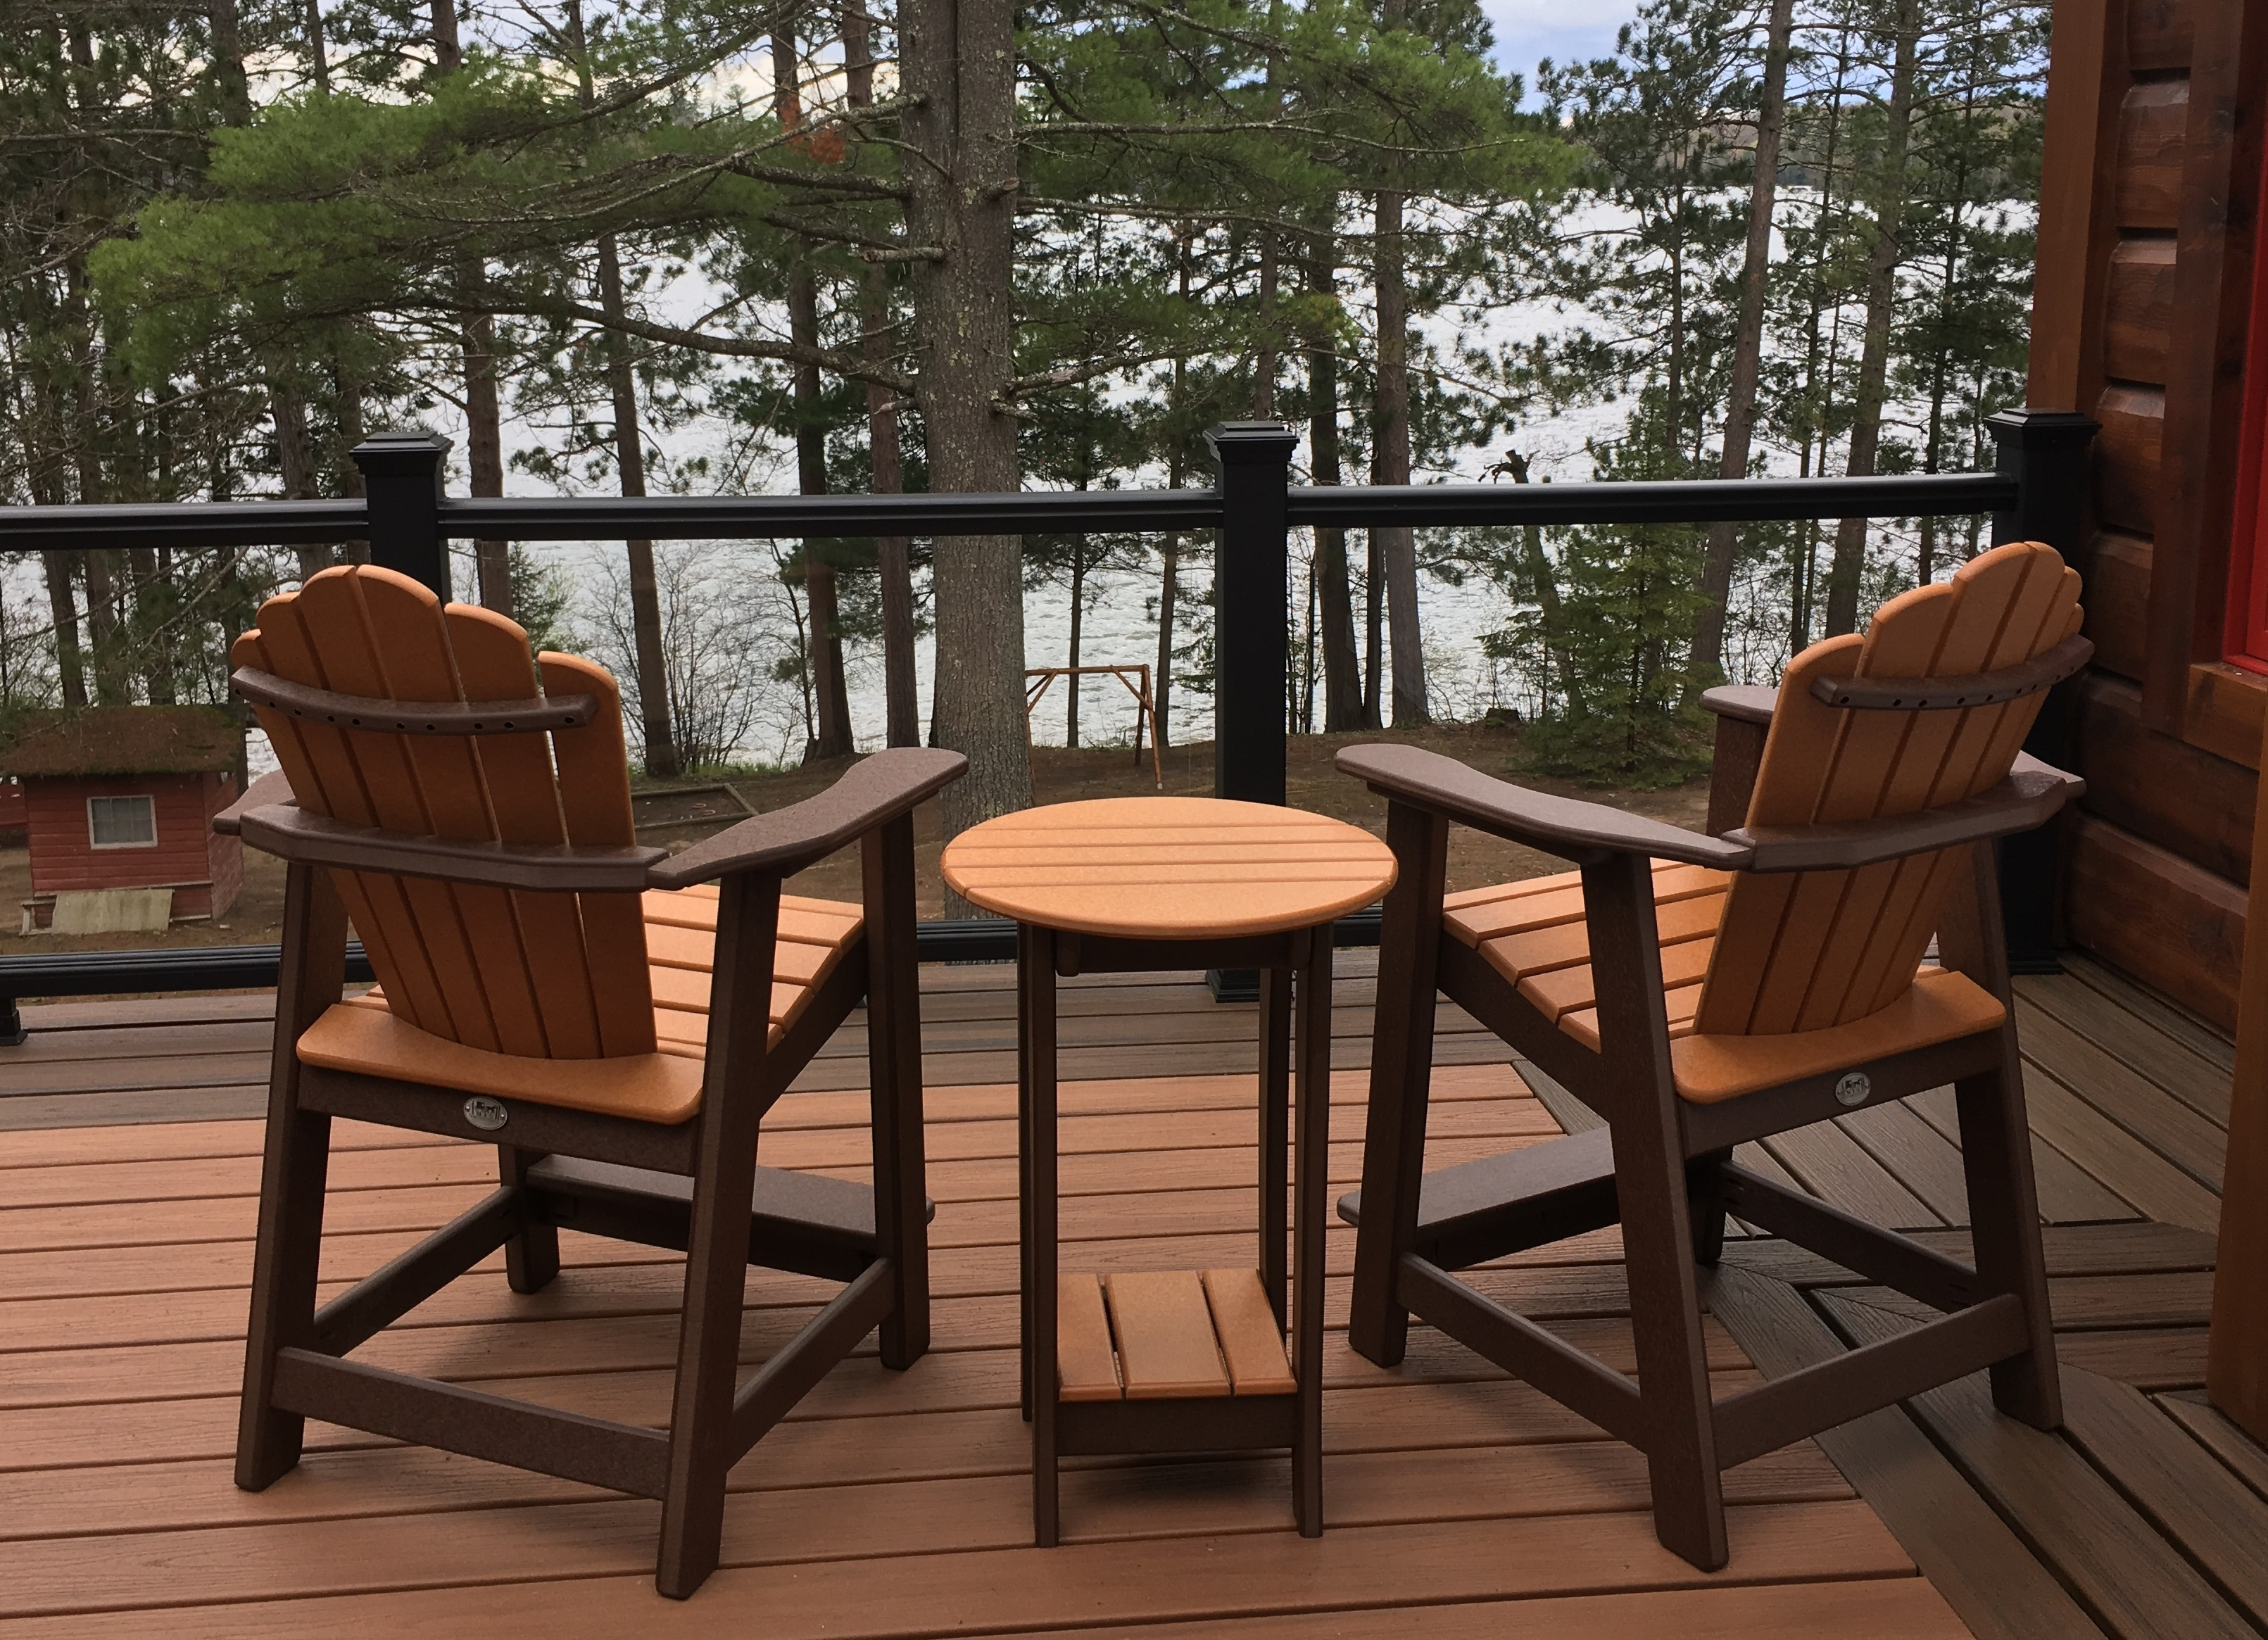 Balcony Height Snuggleback Captains Chairs on the lake in Eagle River Wisconsin